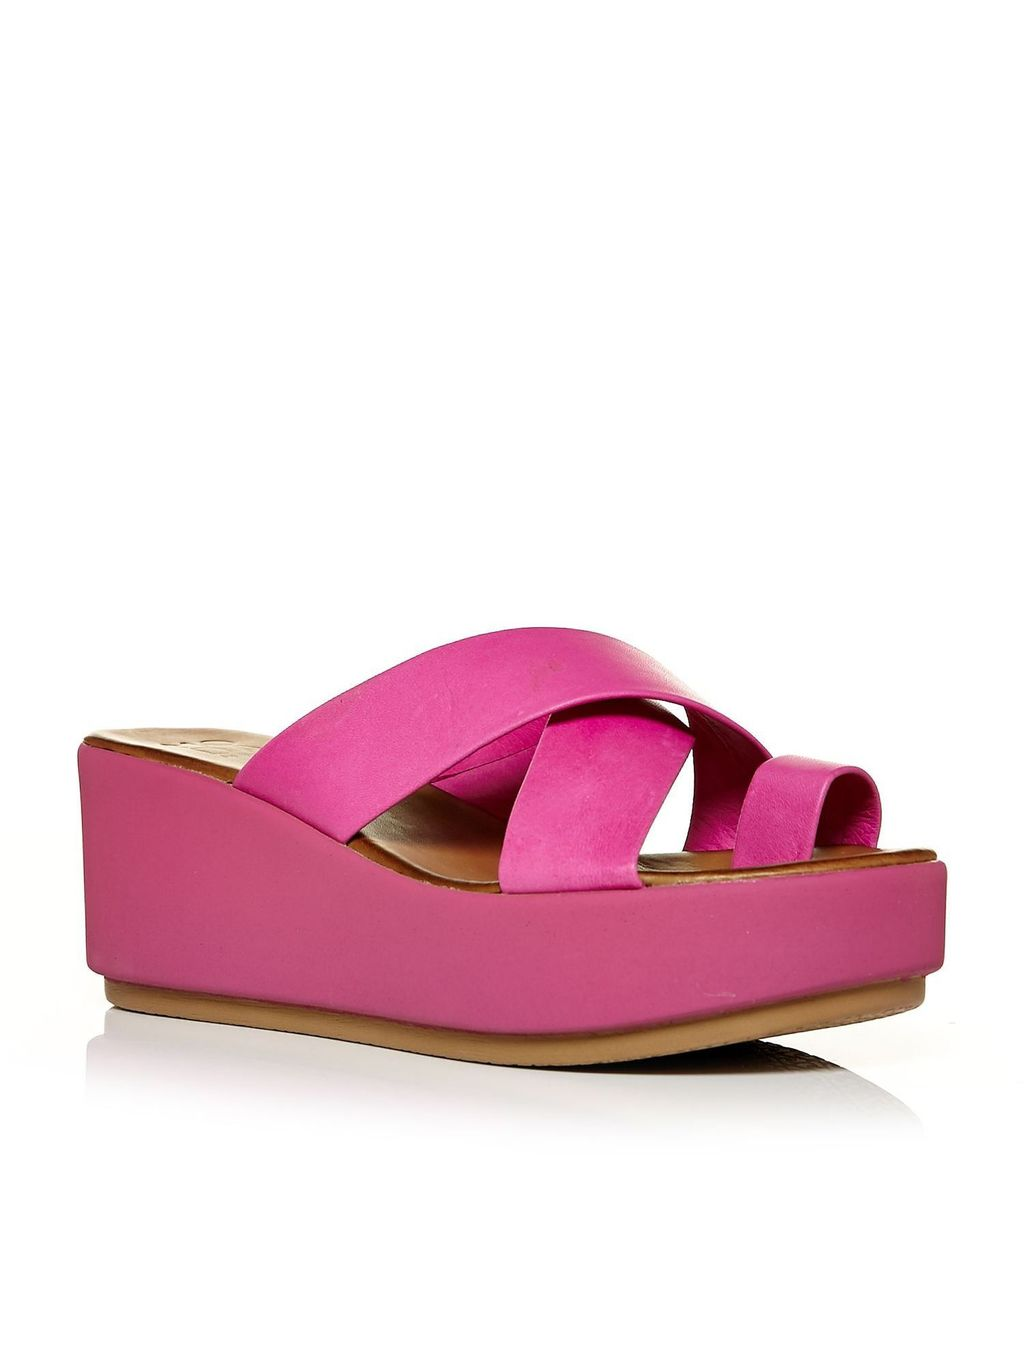 Primki Flatform Sandals, Fuchsia - predominant colour: hot pink; occasions: casual, holiday; material: leather; heel height: high; heel: wedge; toe: open toe/peeptoe; style: strappy; finish: plain; pattern: plain; shoe detail: platform; season: s/s 2016; wardrobe: highlight